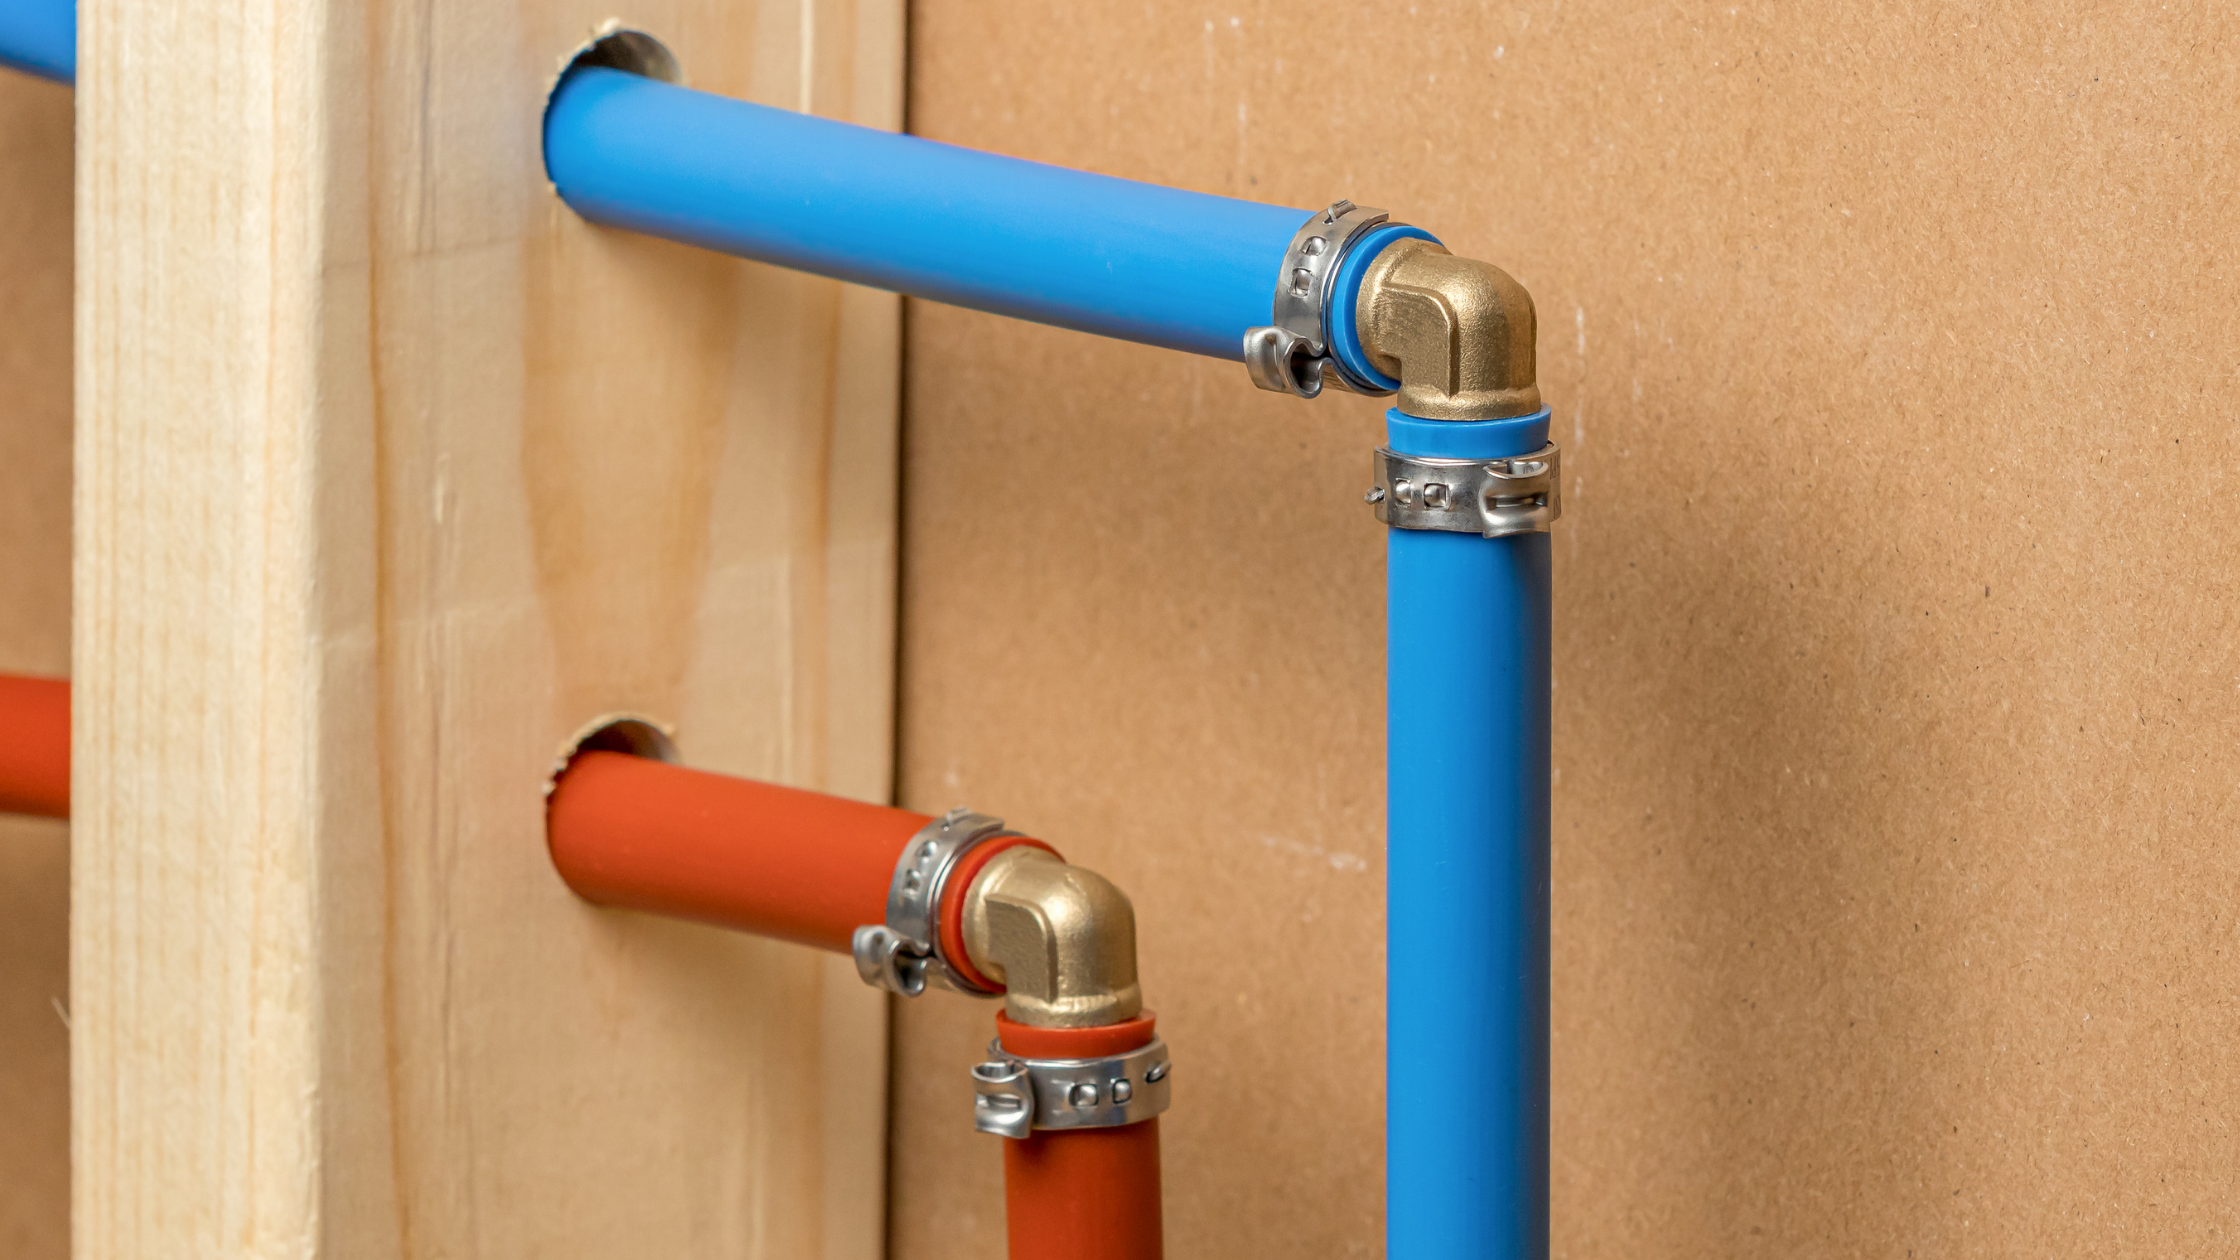 What Is Involved in Repiping a House?